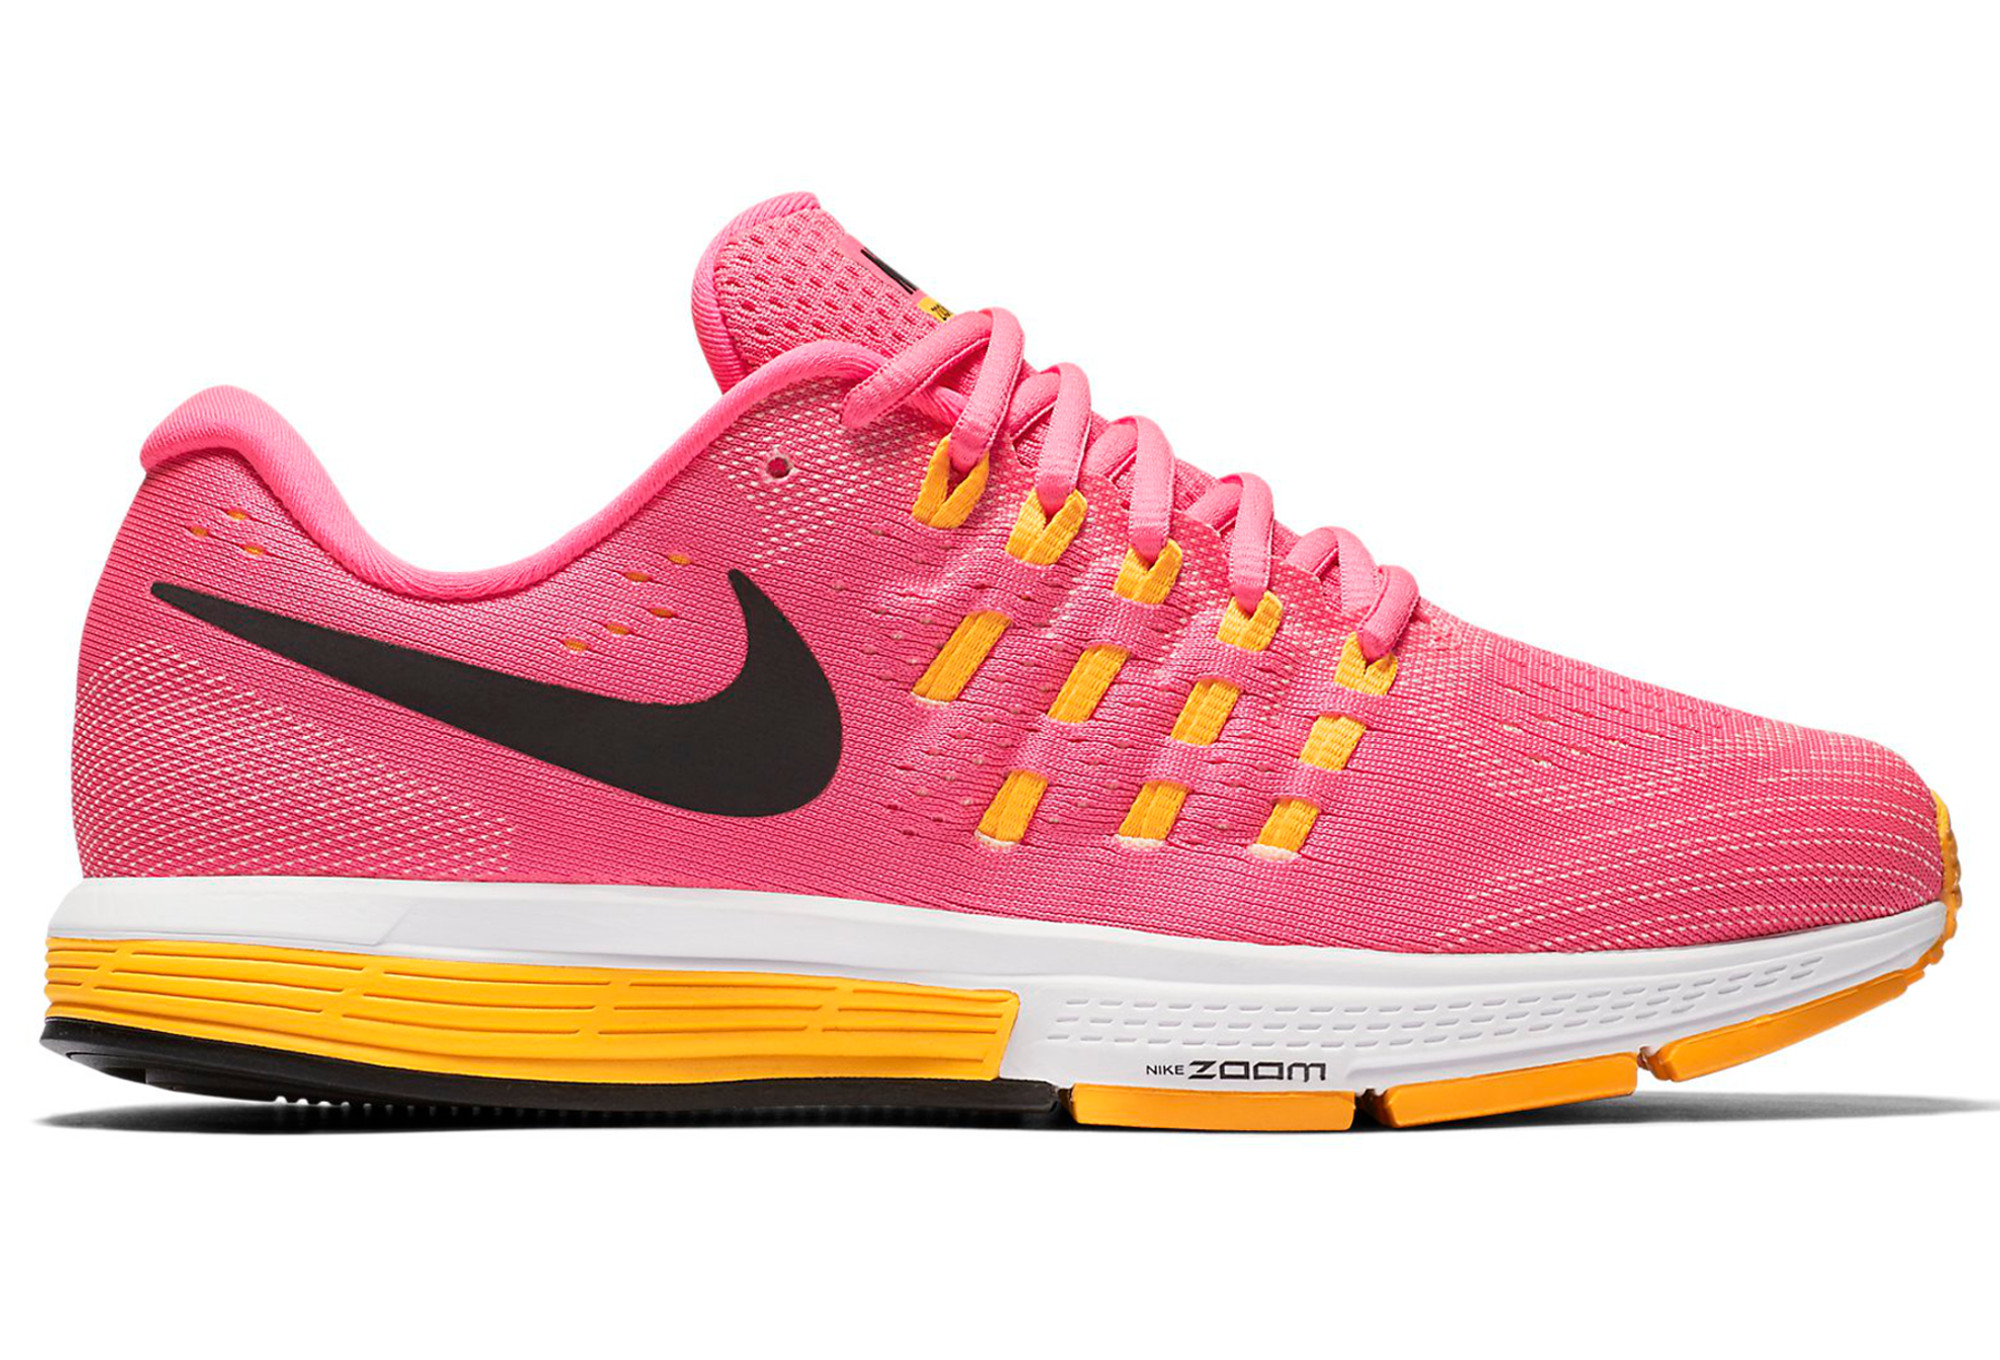 WOMENS NIKE AIR ZOOM VOMERO 11 RUNNING  SHOES/ SIZE 9 / PINK / ORANGE